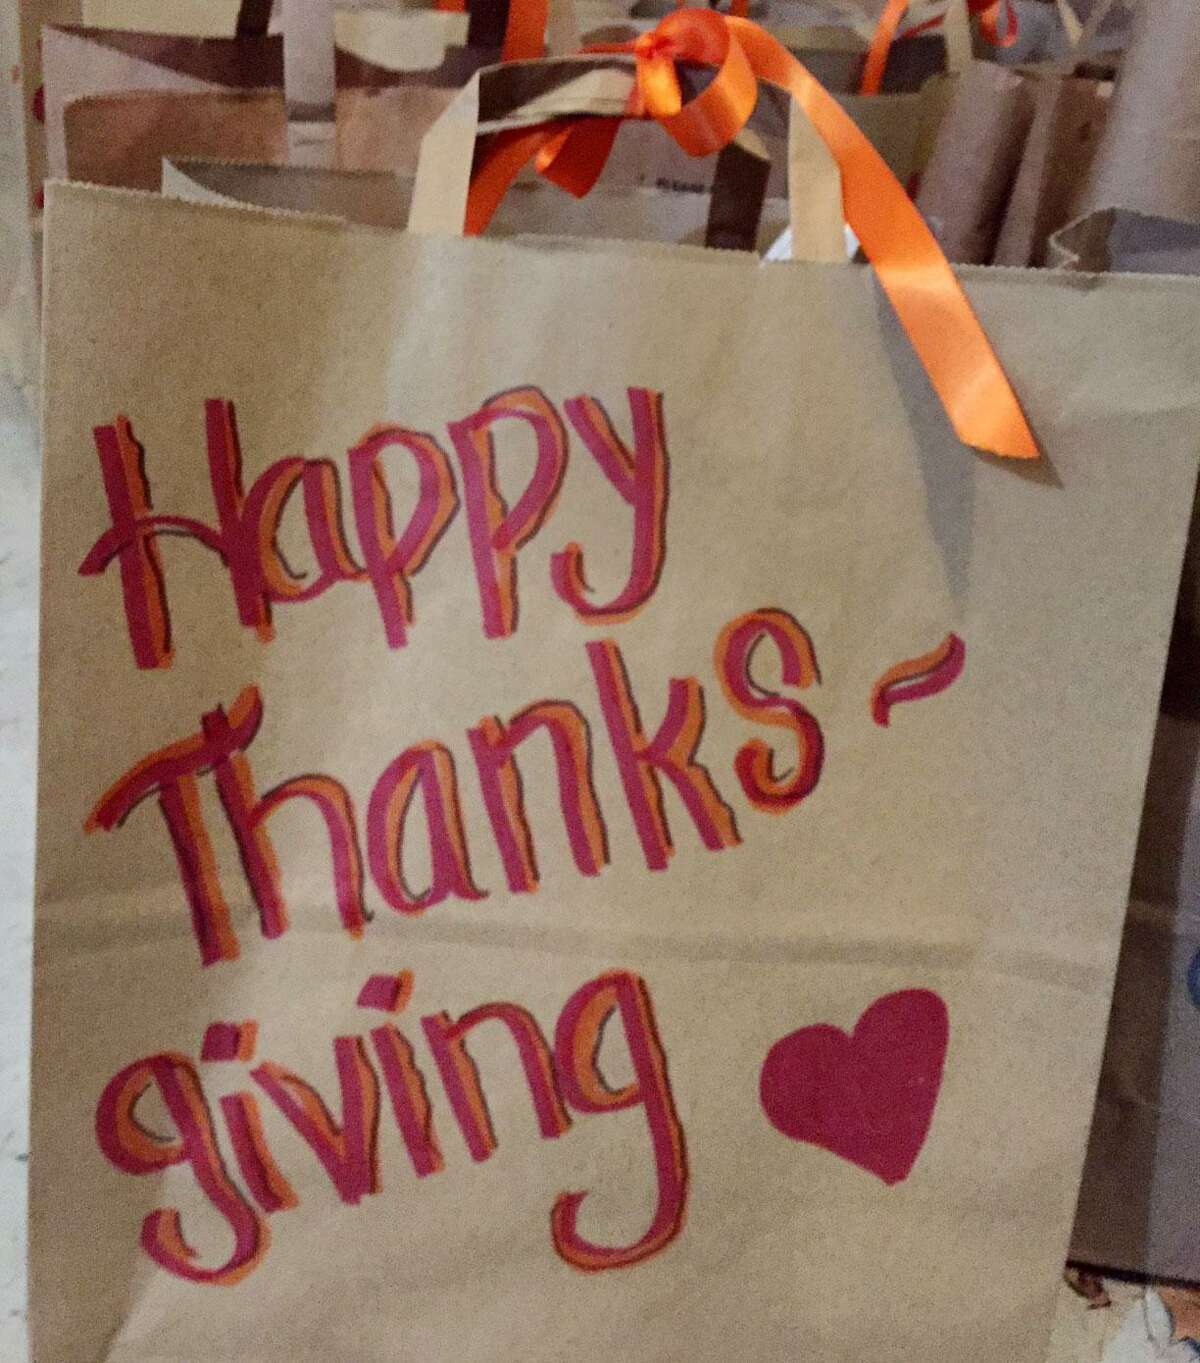 Toni Boucher of Wilton is putting out a last minute call for 100 paper bags containing five ingredients for Thanksgiving side dishes to go along with 500 turkeys being distributed to needy families.